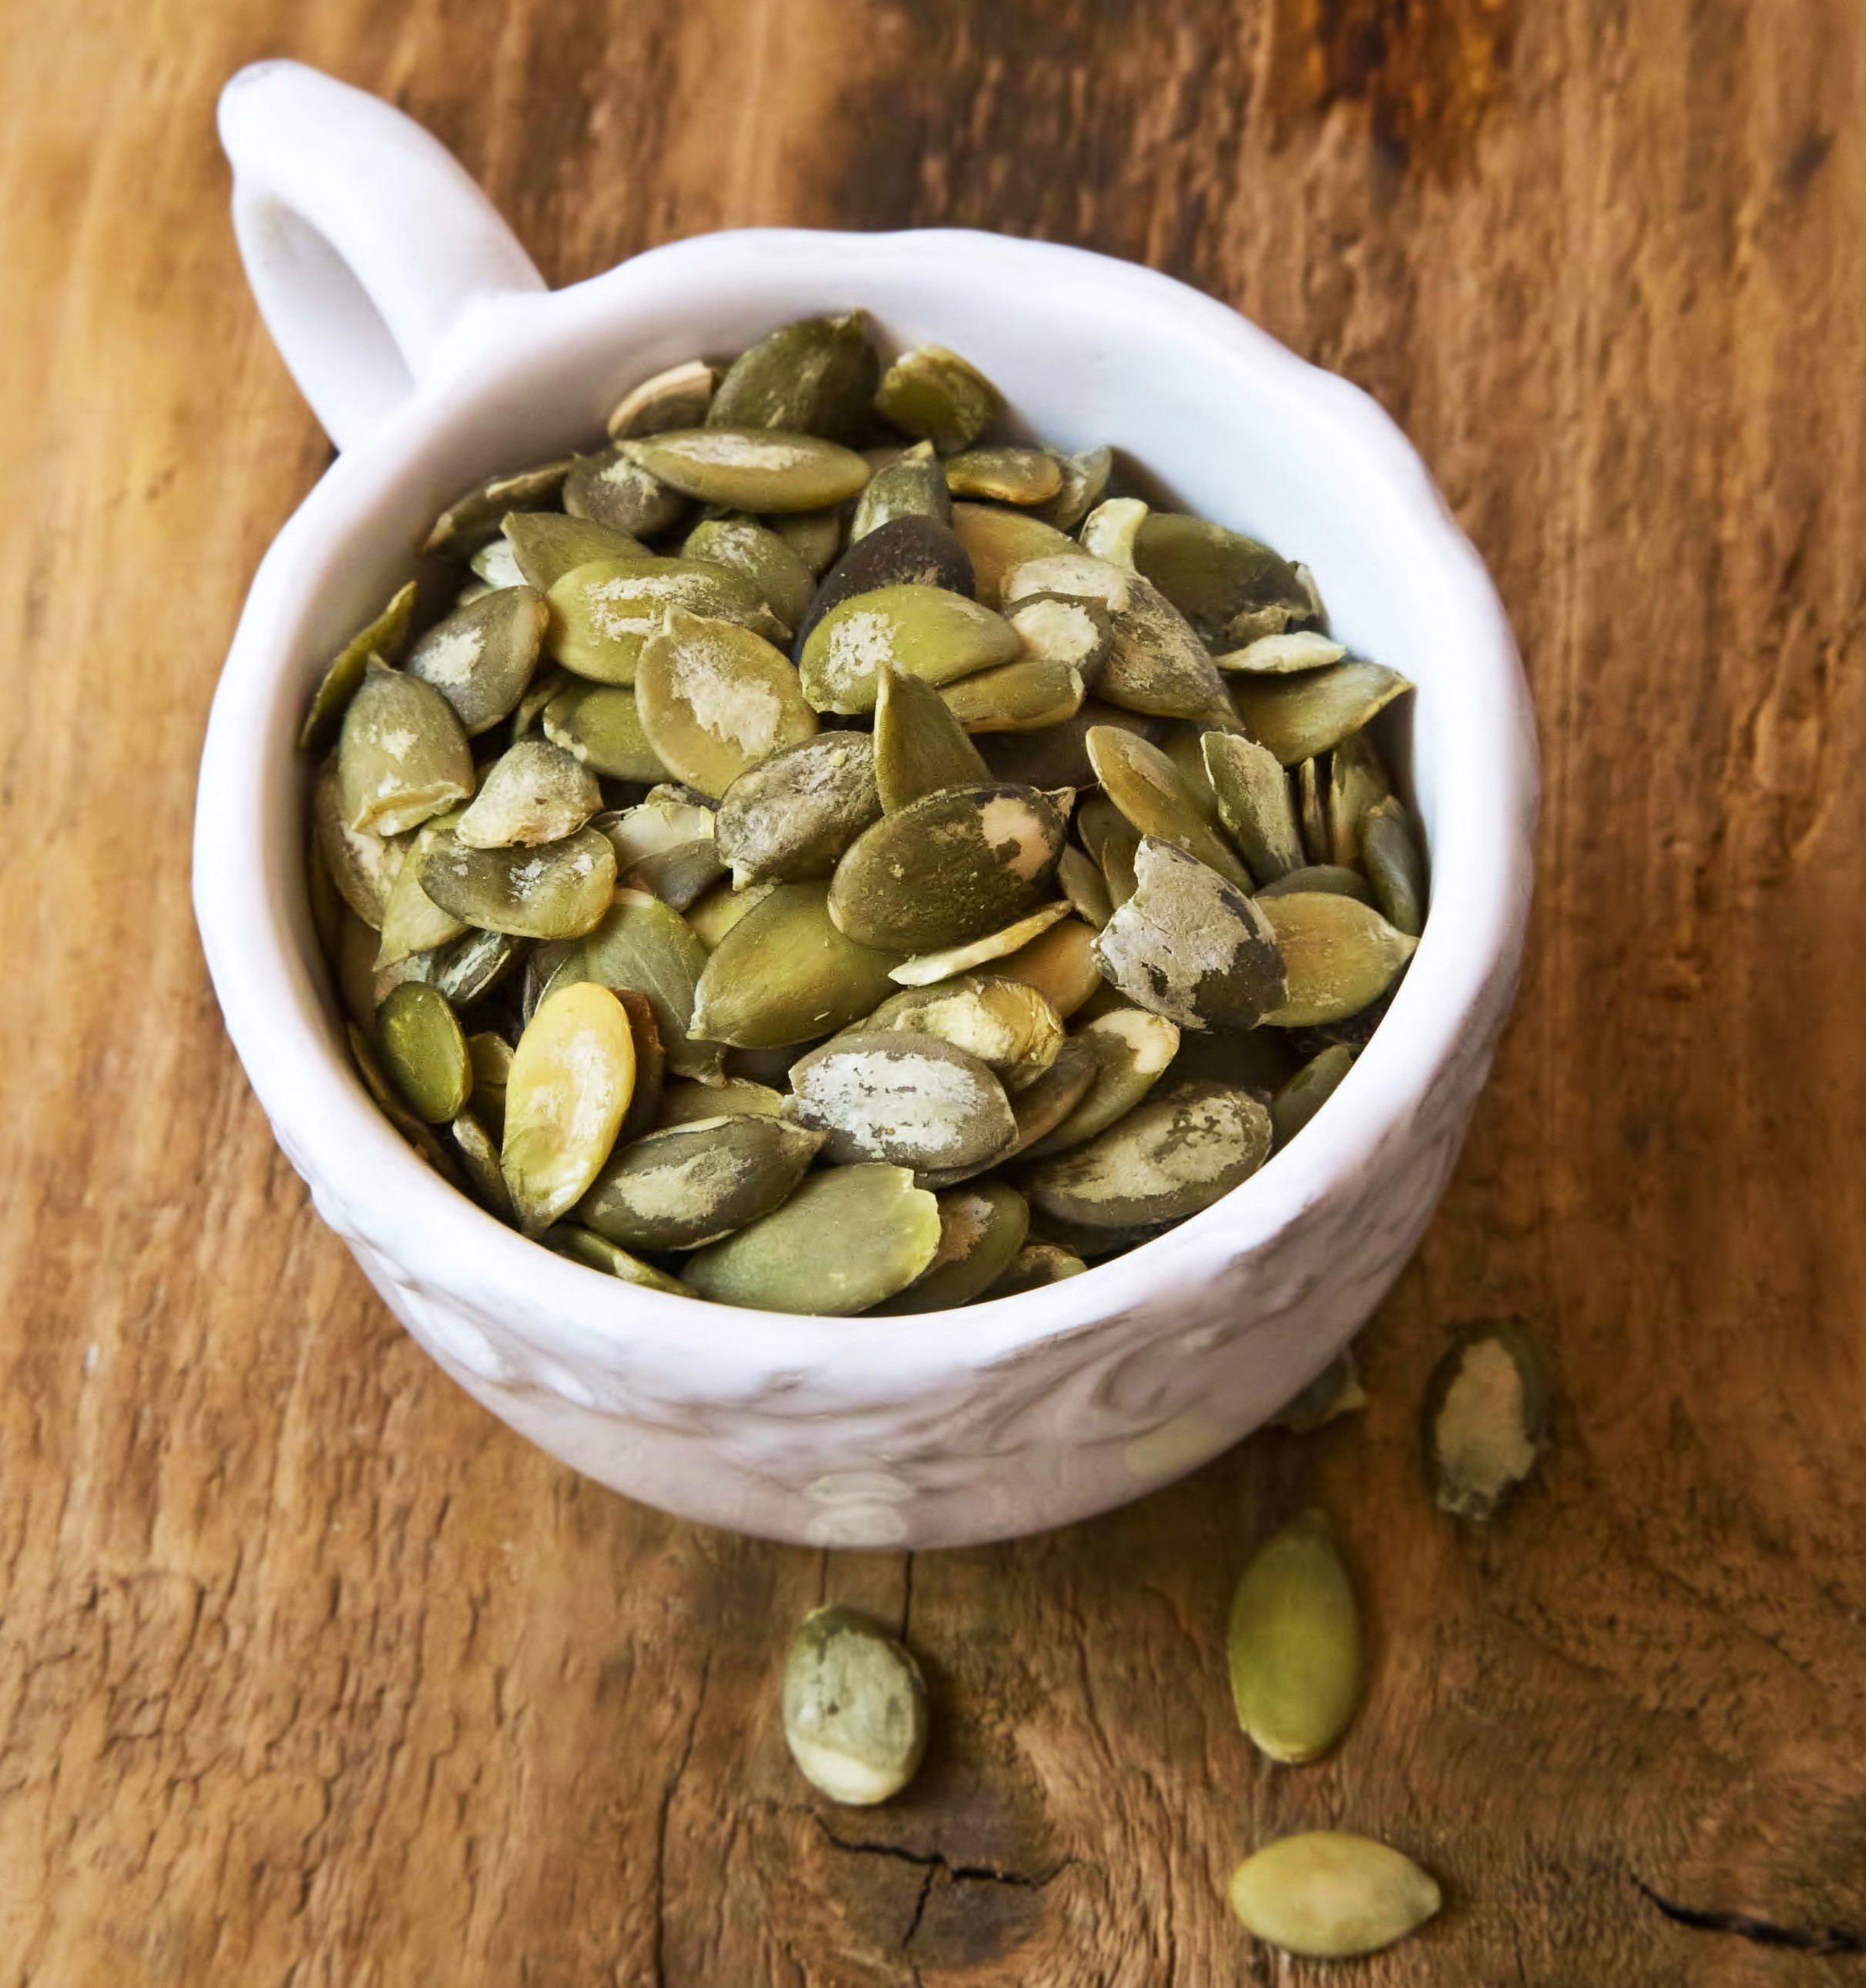 Roasted pumpkin seeds in a white cup.